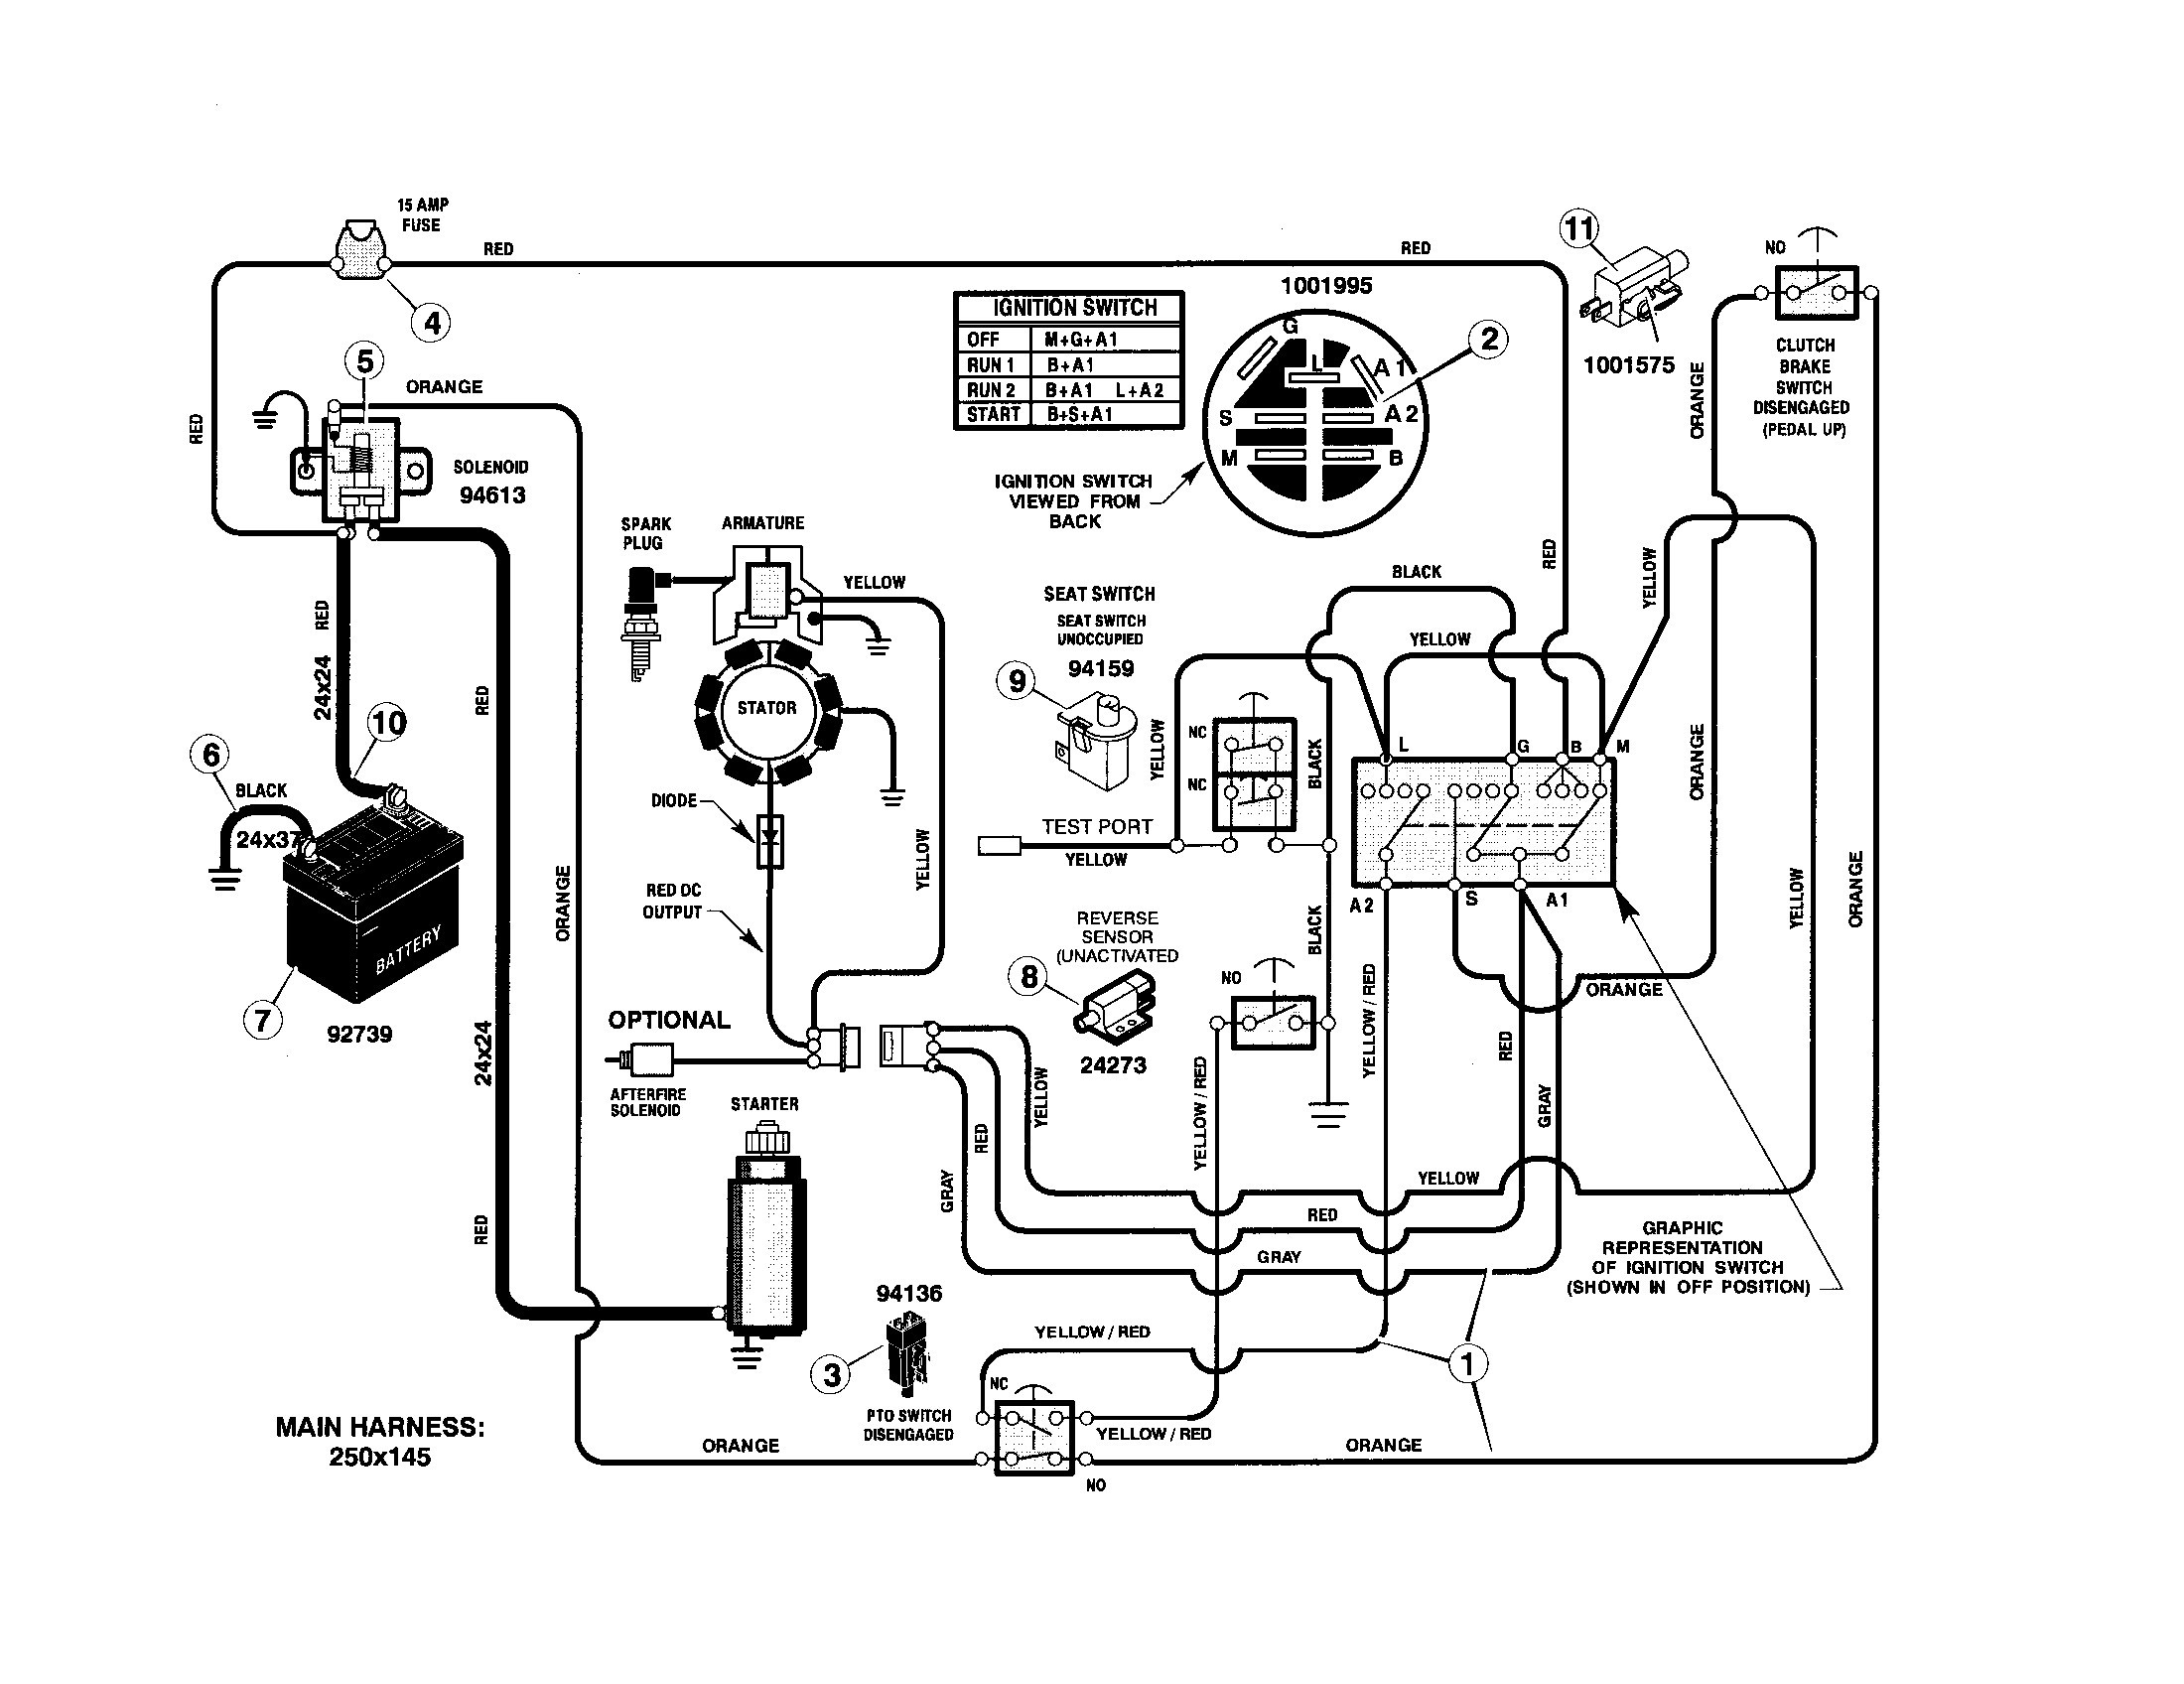 small engine ignition diagram wiring diagram ops Kohler Key Switch Wiring Diagram